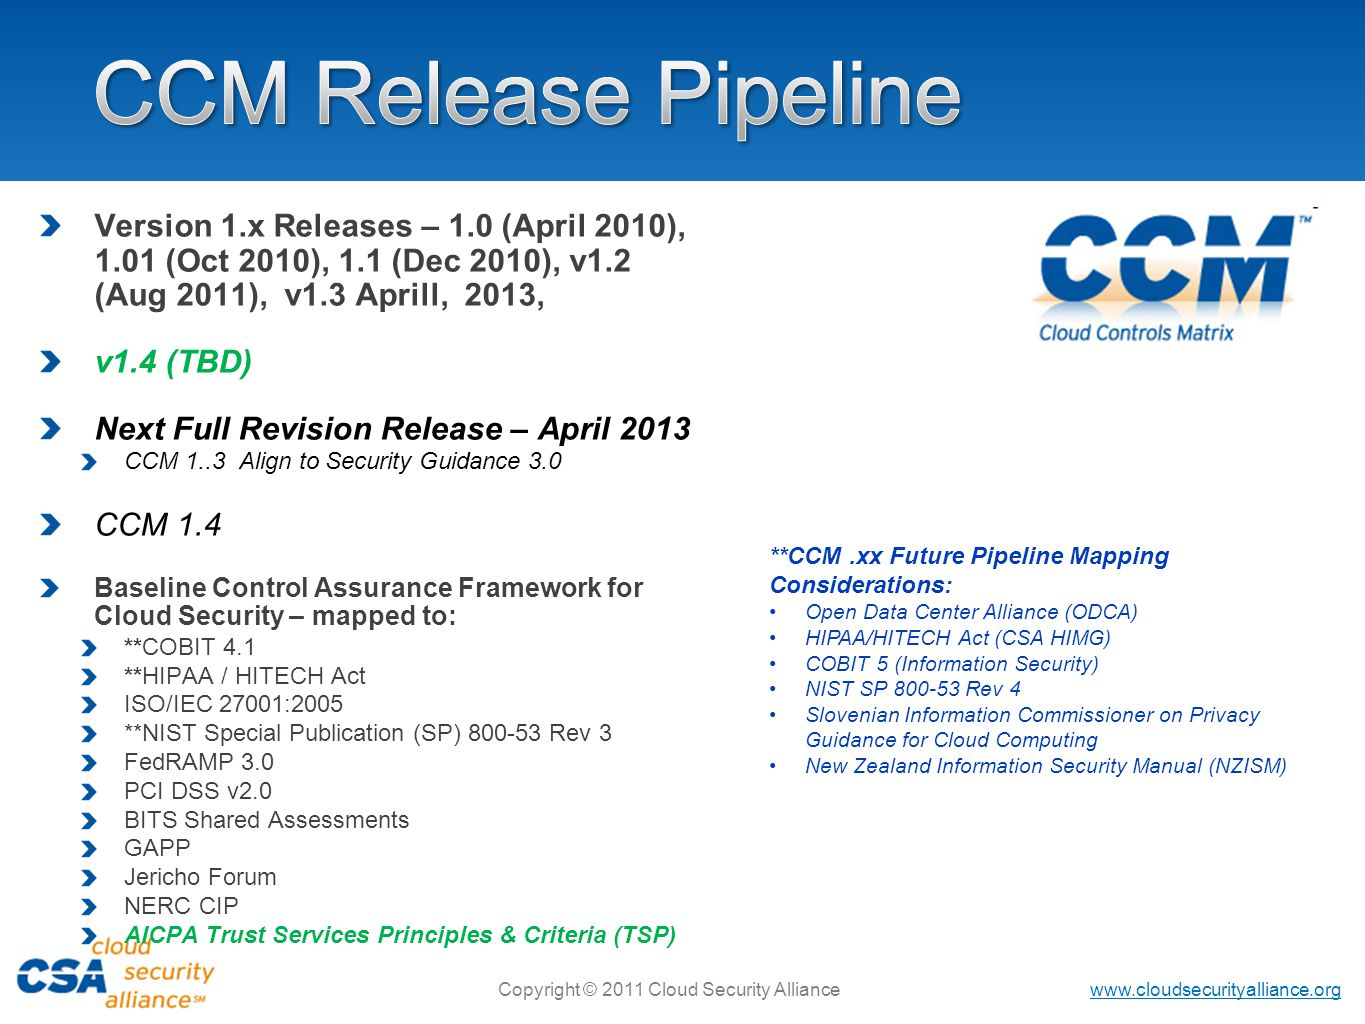 www.cloudsecurityalliance.org Copyright © 2011 Cloud Security Alliance Version 1.x Releases – 1.0 (April 2010), 1.01 (Oct 2010), 1.1 (Dec 2010), v1.2 (Aug 2011), v1.3 Aprill, 2013, v1.4 (TBD) Next Full Revision Release – April 2013 CCM 1..3 Align to Security Guidance 3.0 CCM 1.4 Baseline Control Assurance Framework for Cloud Security – mapped to: **COBIT 4.1 **HIPAA / HITECH Act ISO/IEC 27001:2005 **NIST Special Publication (SP) 800-53 Rev 3 FedRAMP 3.0 PCI DSS v2.0 BITS Shared Assessments GAPP Jericho Forum NERC CIP AICPA Trust Services Principles & Criteria (TSP) **CCM.xx Future Pipeline Mapping Considerations: Open Data Center Alliance (ODCA) HIPAA/HITECH Act (CSA HIMG) COBIT 5 (Information Security) NIST SP 800-53 Rev 4 Slovenian Information Commissioner on Privacy Guidance for Cloud Computing New Zealand Information Security Manual (NZISM)